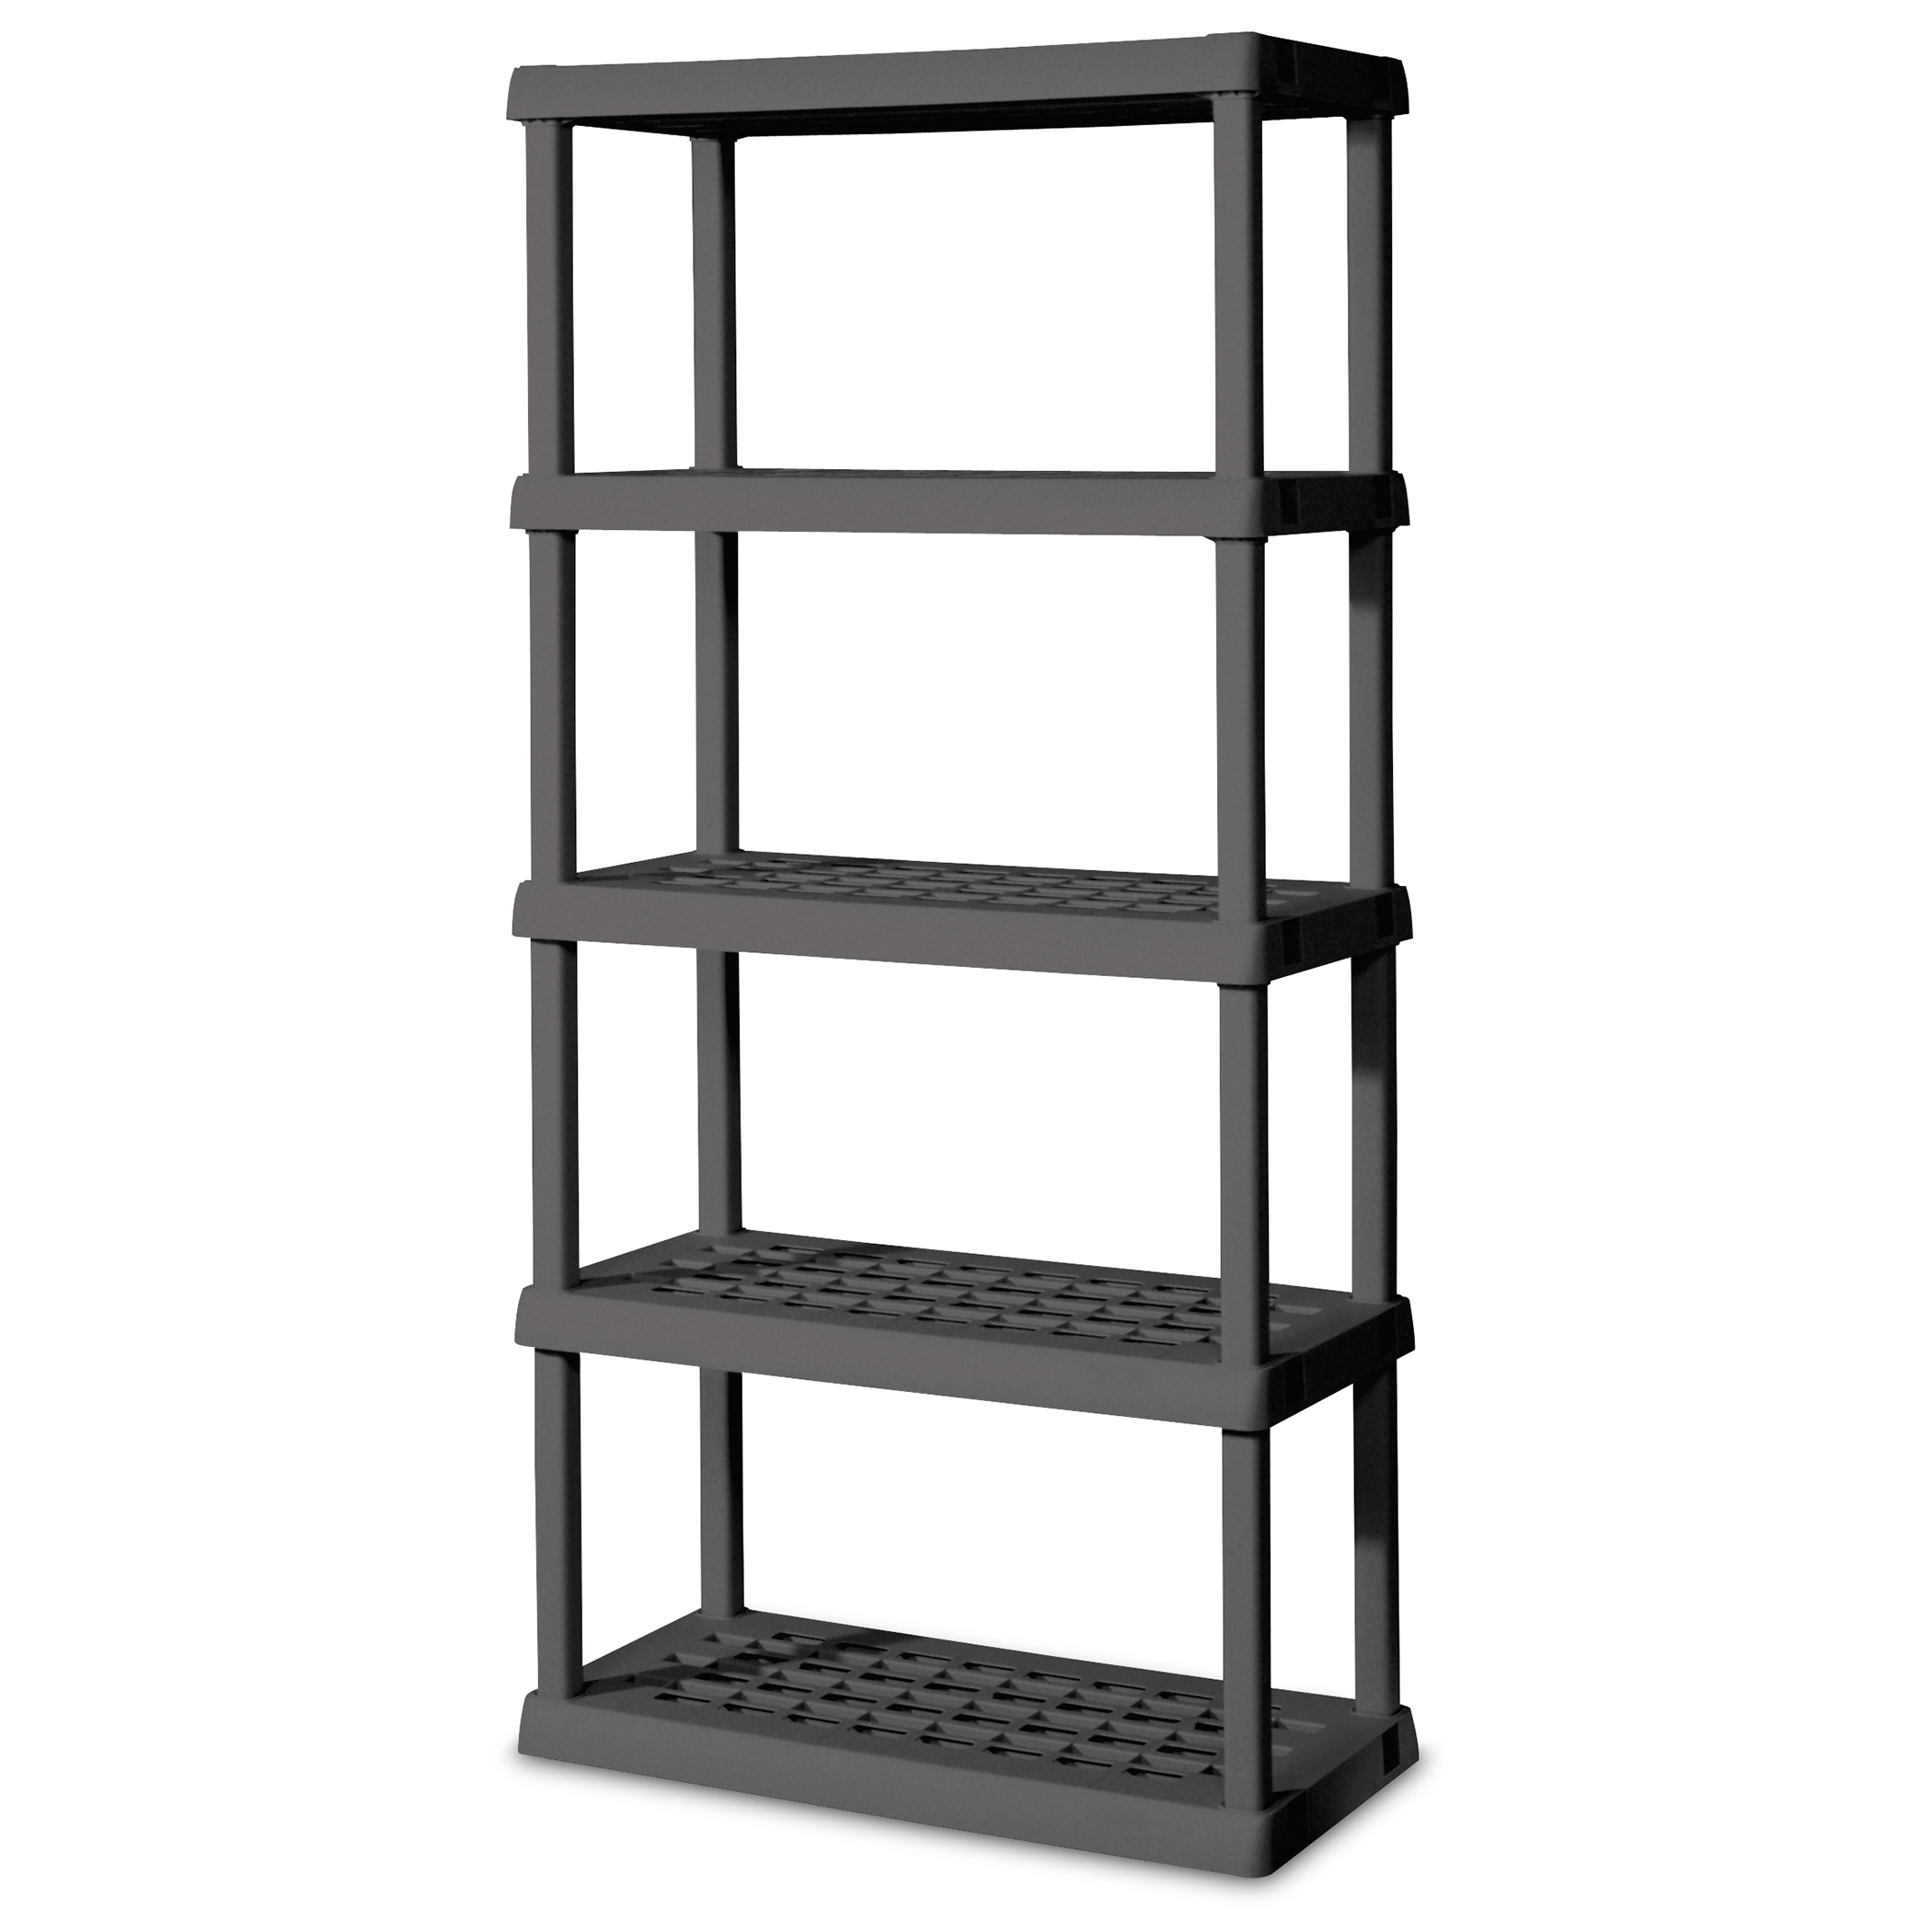 Sterilite 01553V01 Flat Gray 5 Shelf Shelving Unit by STERILITE - MASSILLON OH